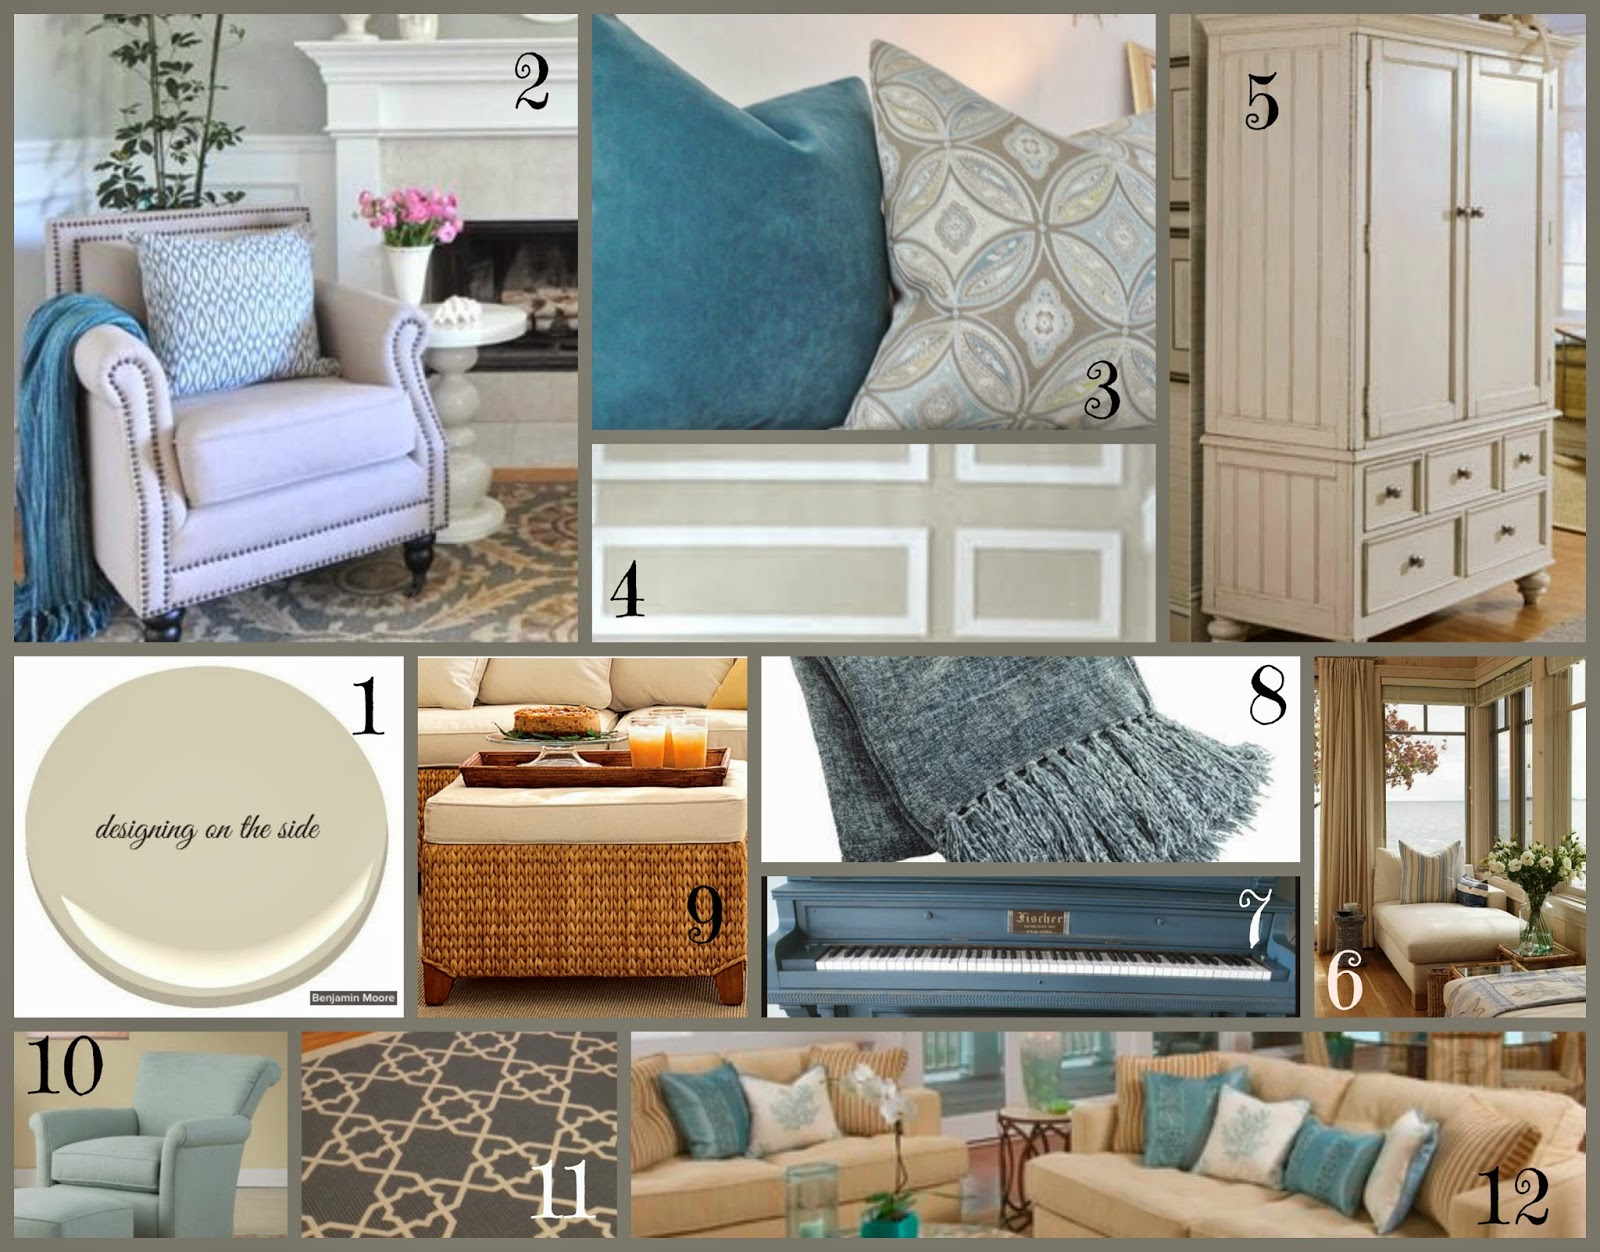 Country master bathroom designs - Designing On The Side Ask Allie